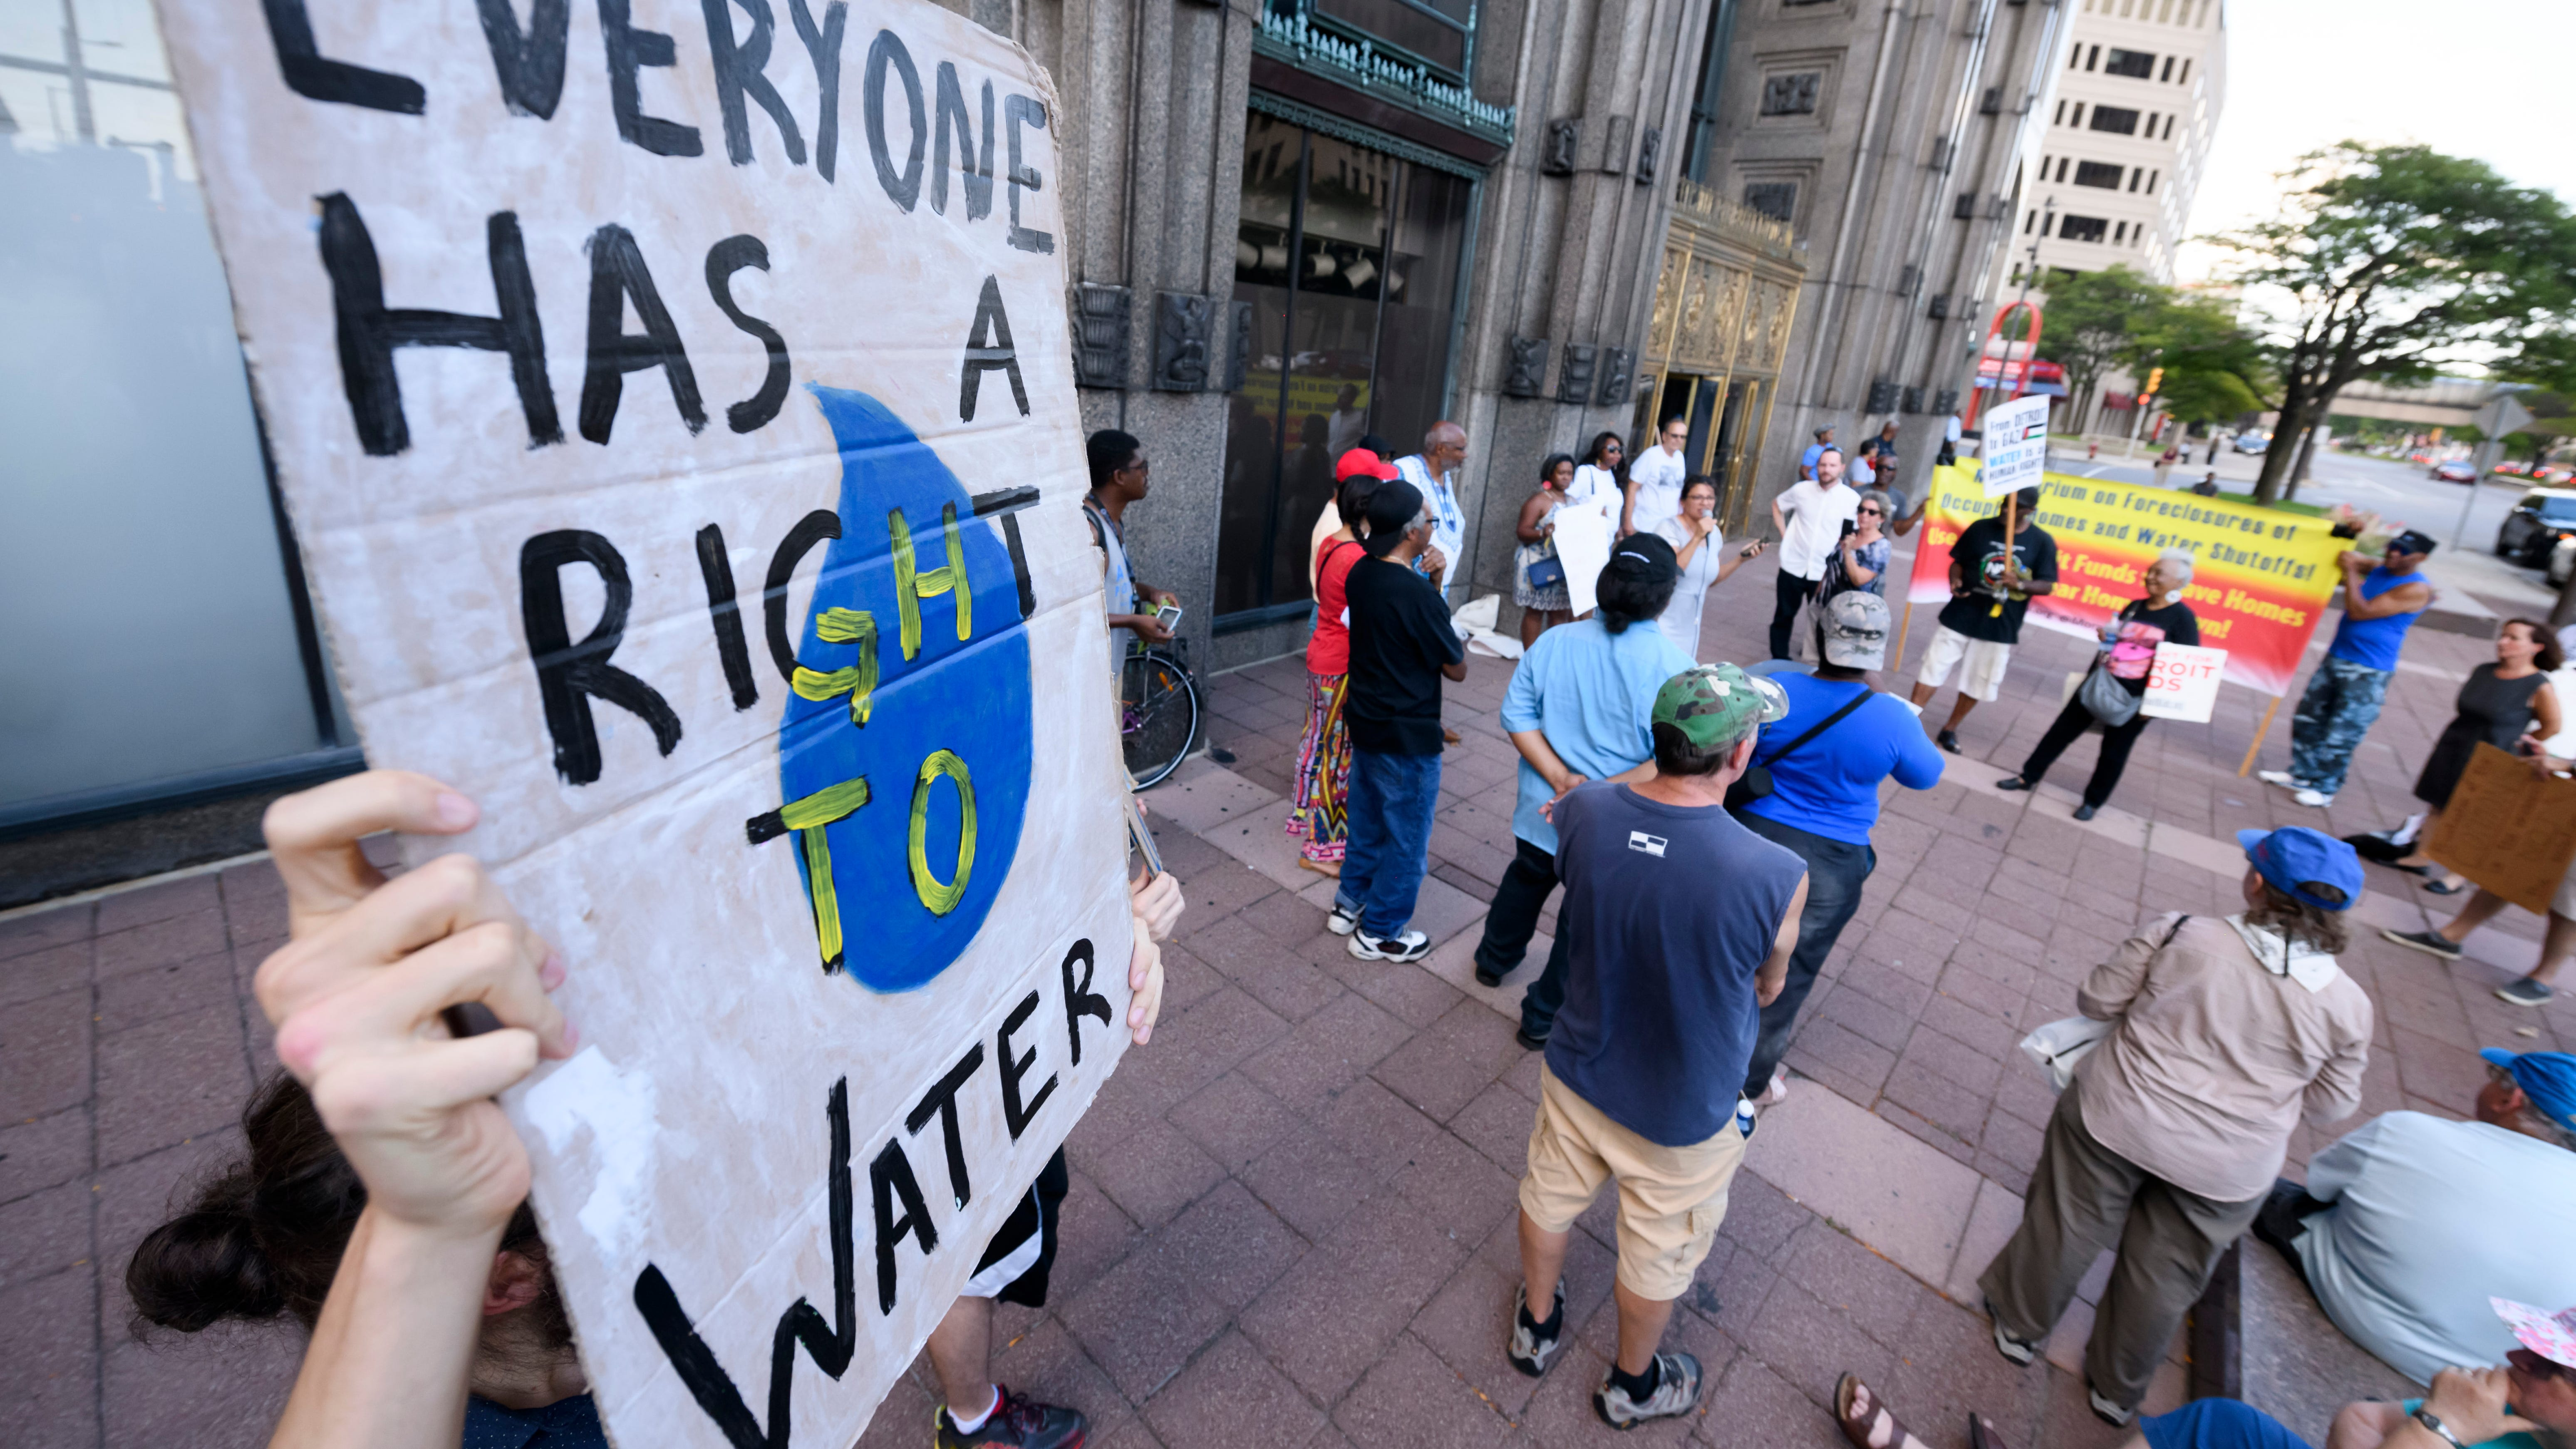 Signs are held during a demonstration and protest demanding safe and clean drinking water for students at Detroit Public Schools, held at the Fisher Building, home of the DPSCD administration office, in Detroit, September 4, 2018.